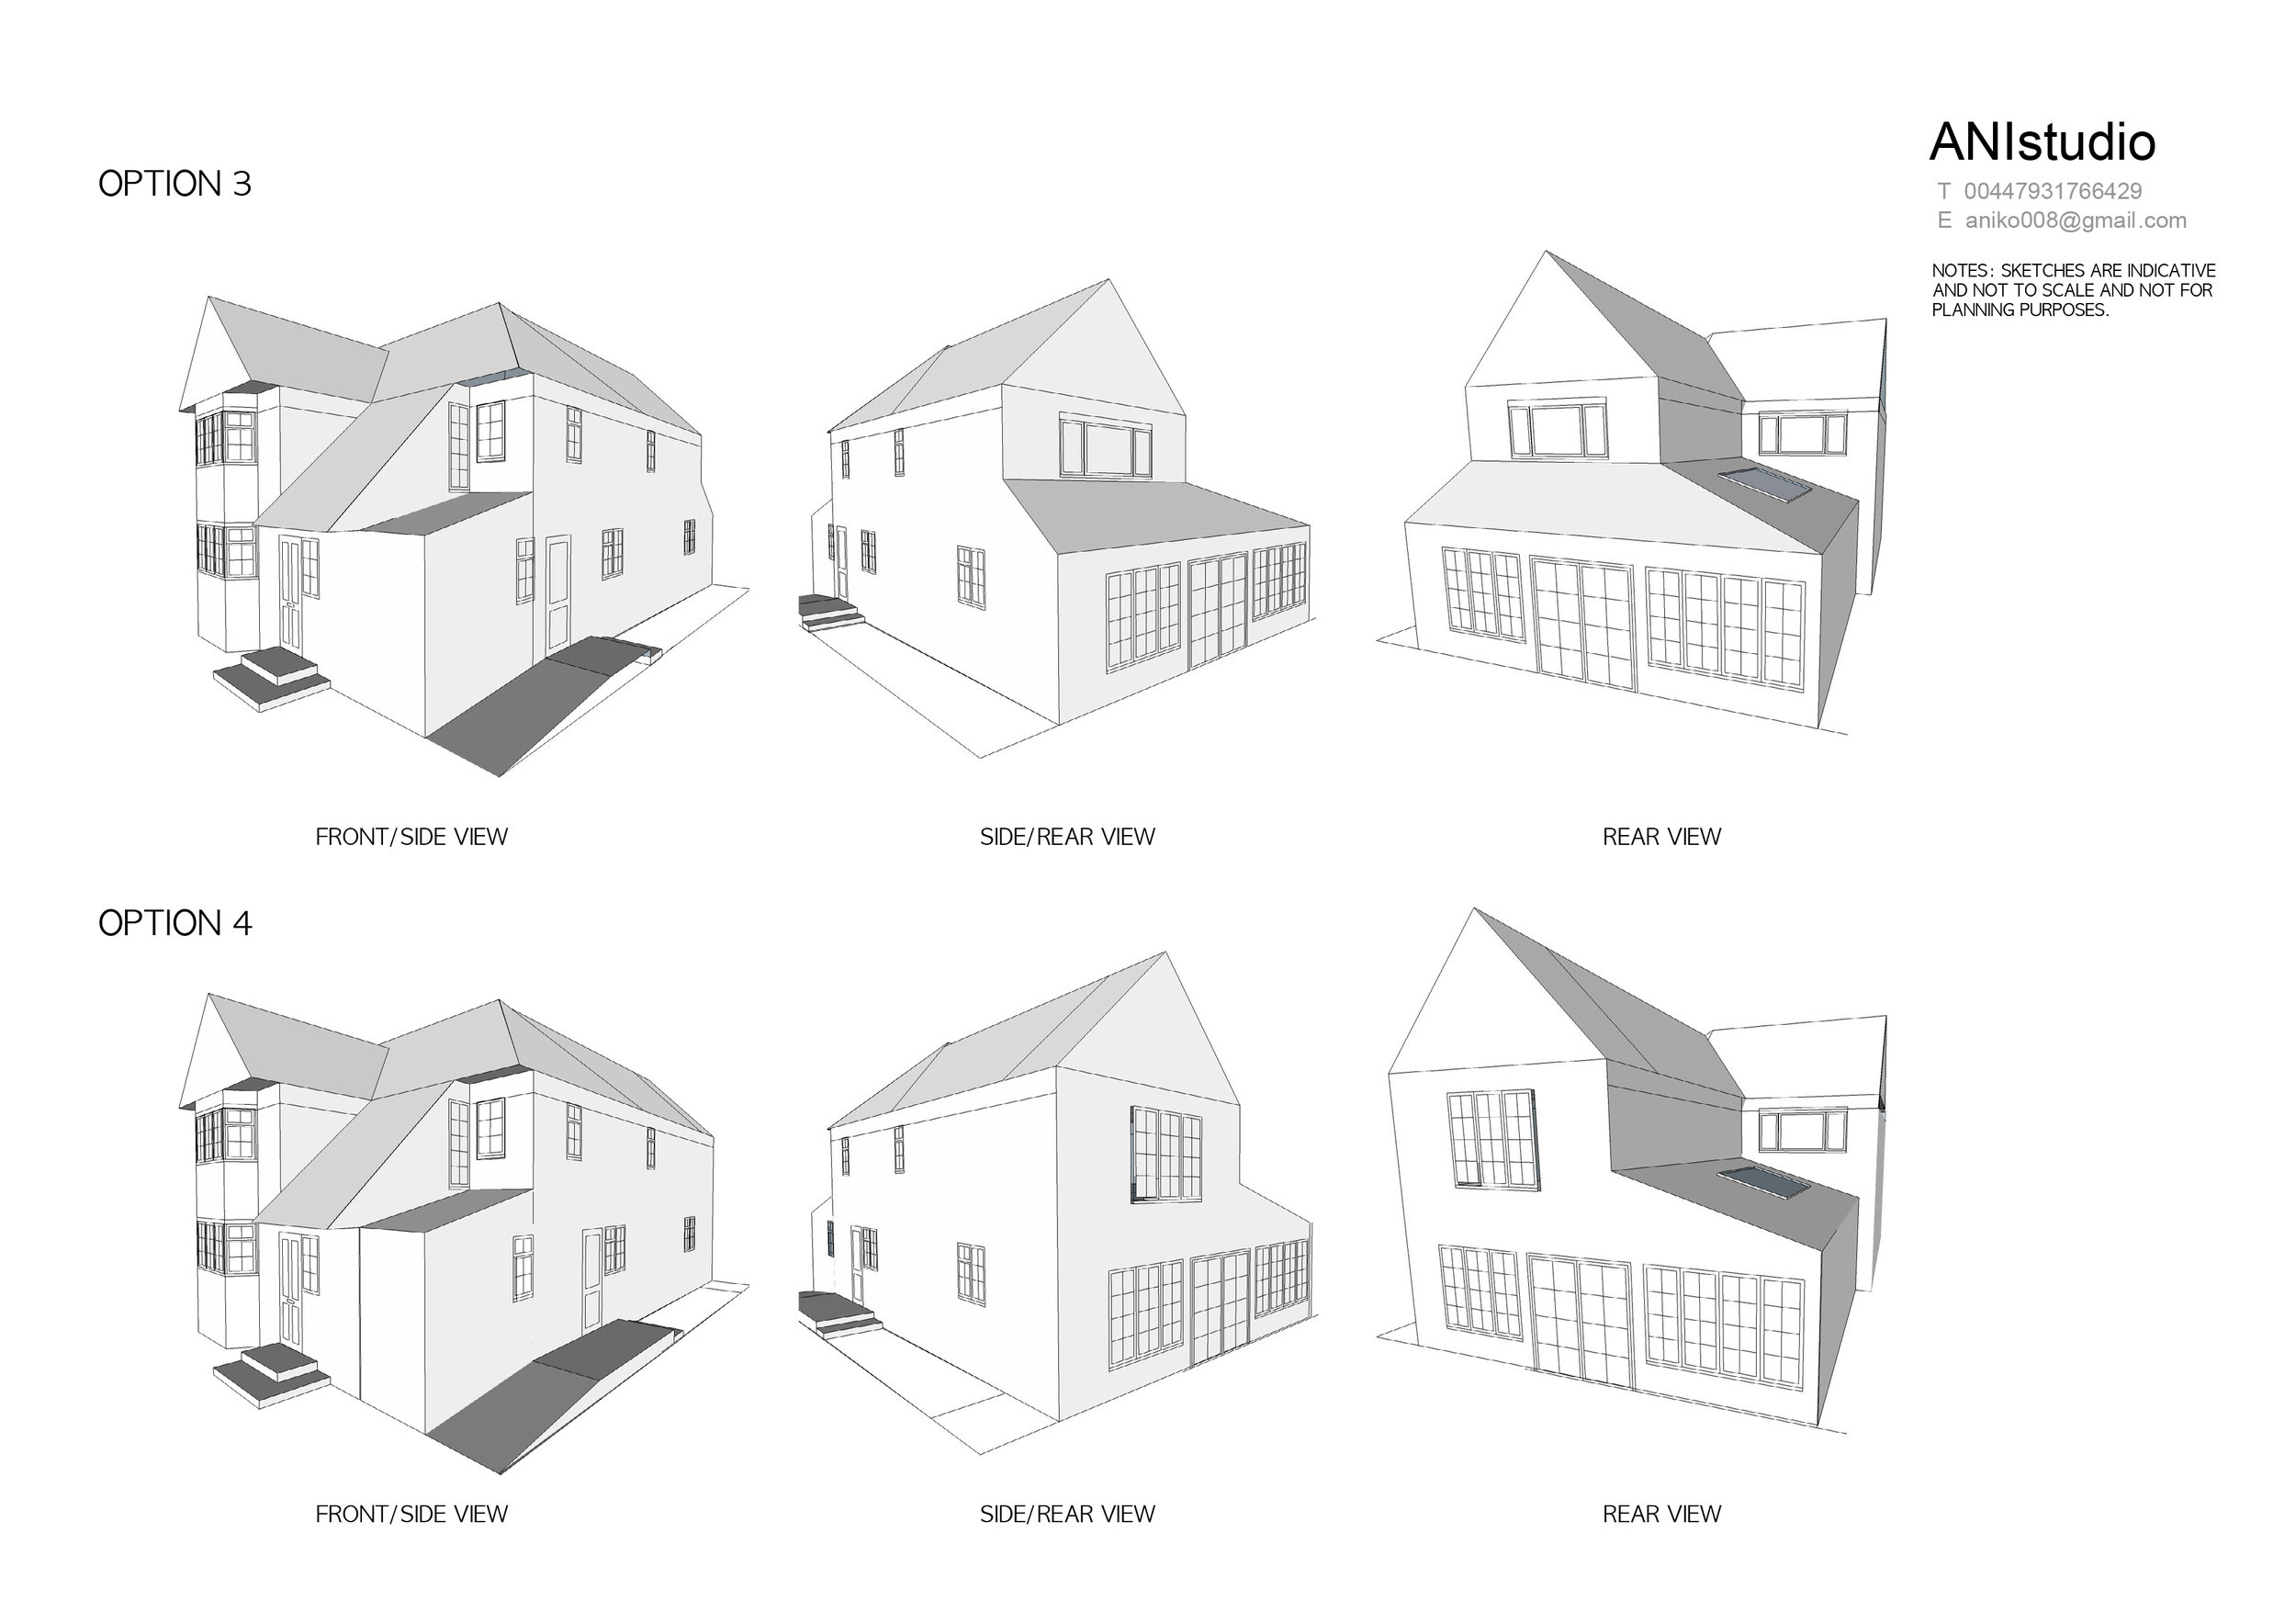 3D SKETCHES OF OPTIONS 1-4-2.jpg